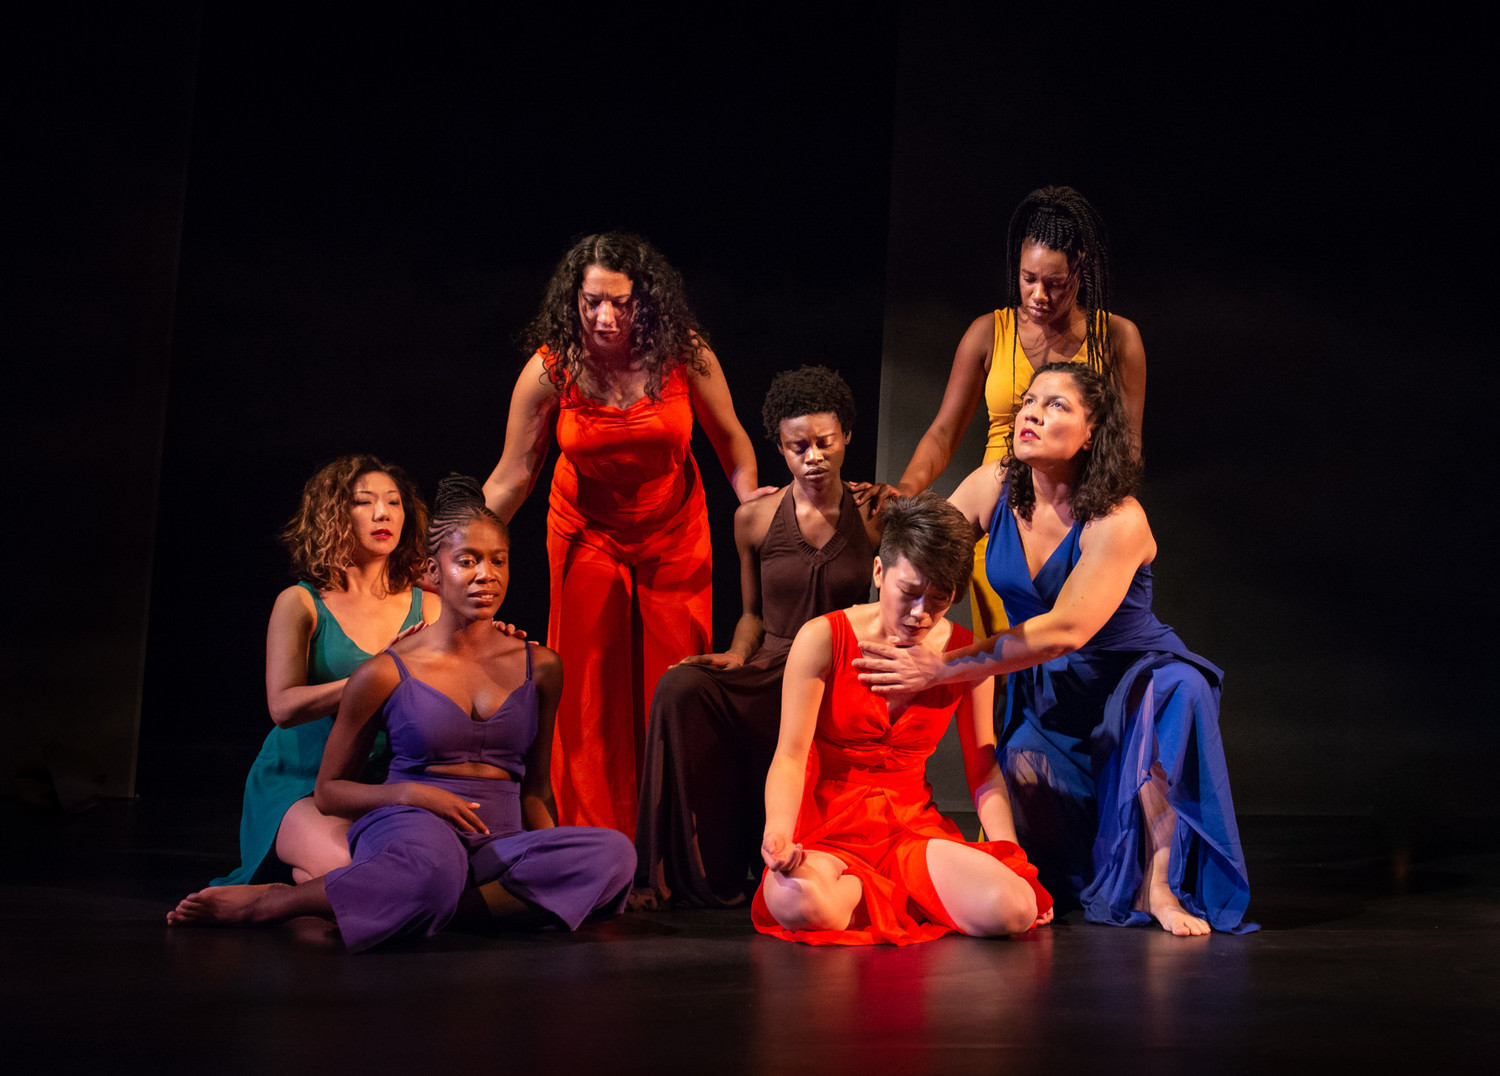 BWW Review: FOR COLORED GIRLS WHO HAVE CONSIDERED SUICIDE / WHEN THE RAINBOW IS ENUF at Penumbra Theatre